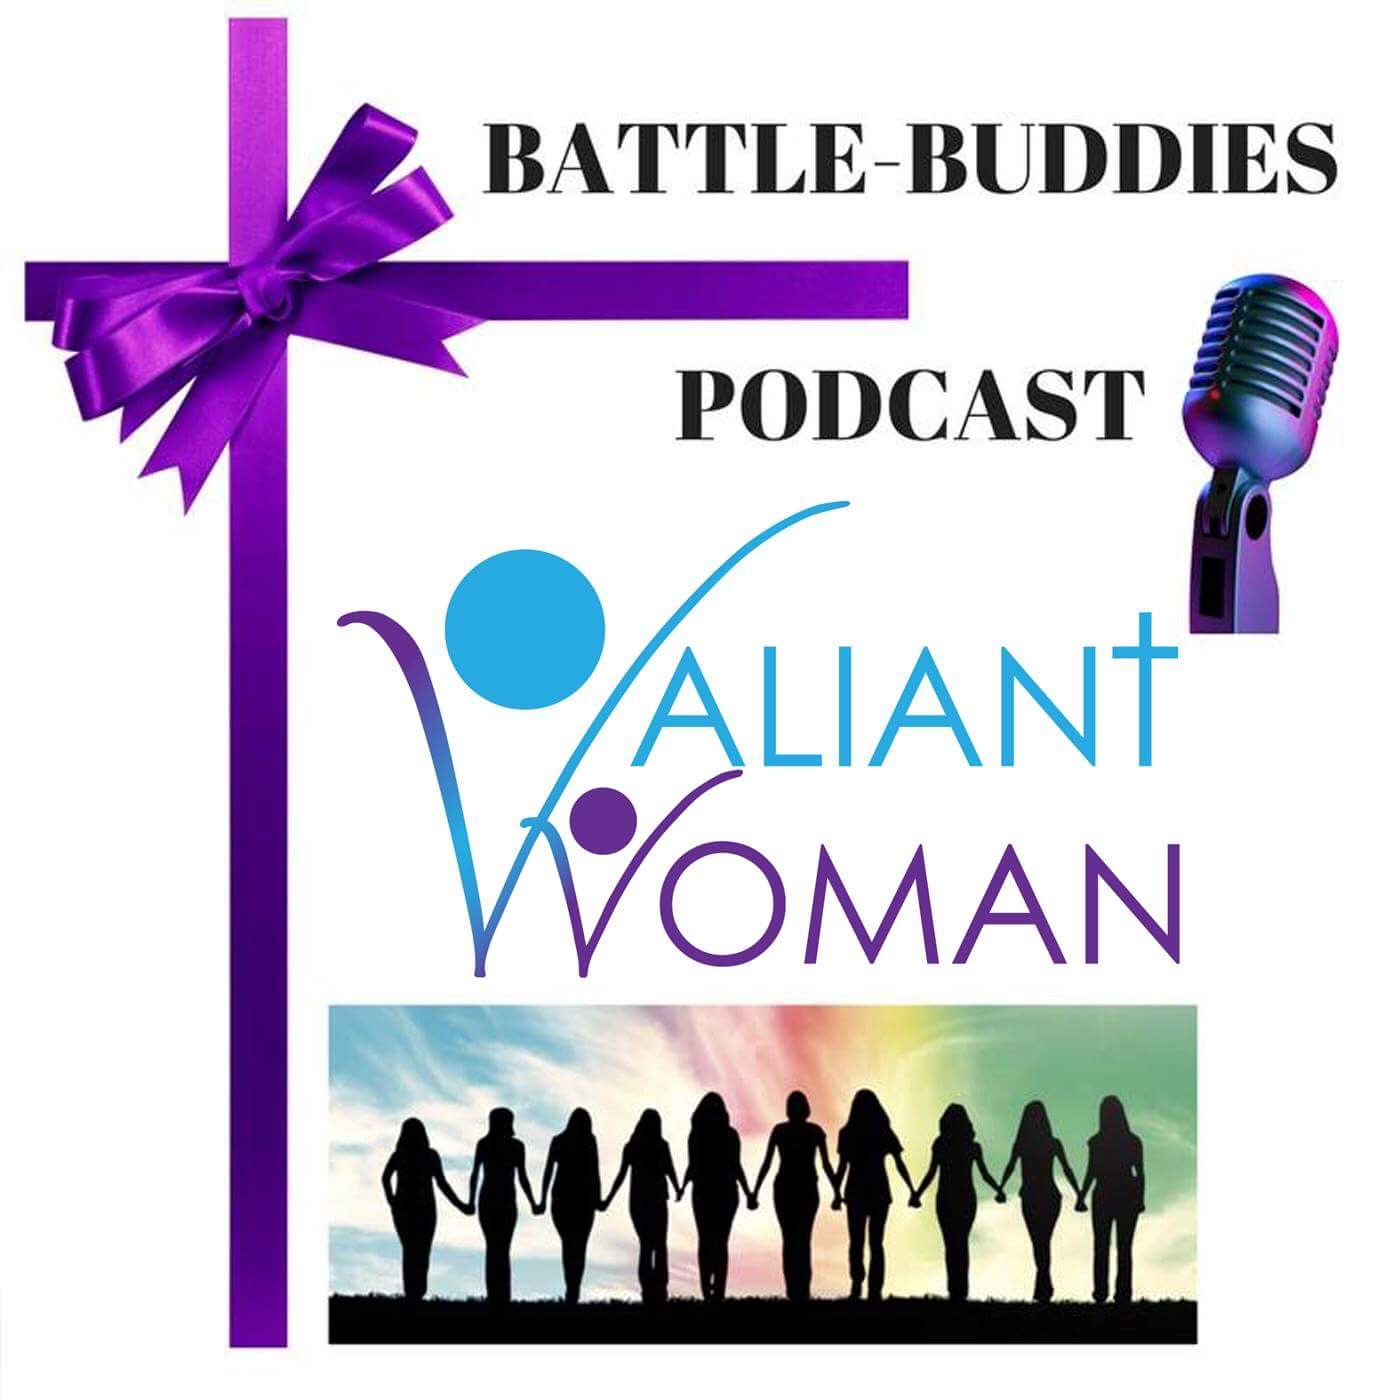 Valiant Woman Podcast